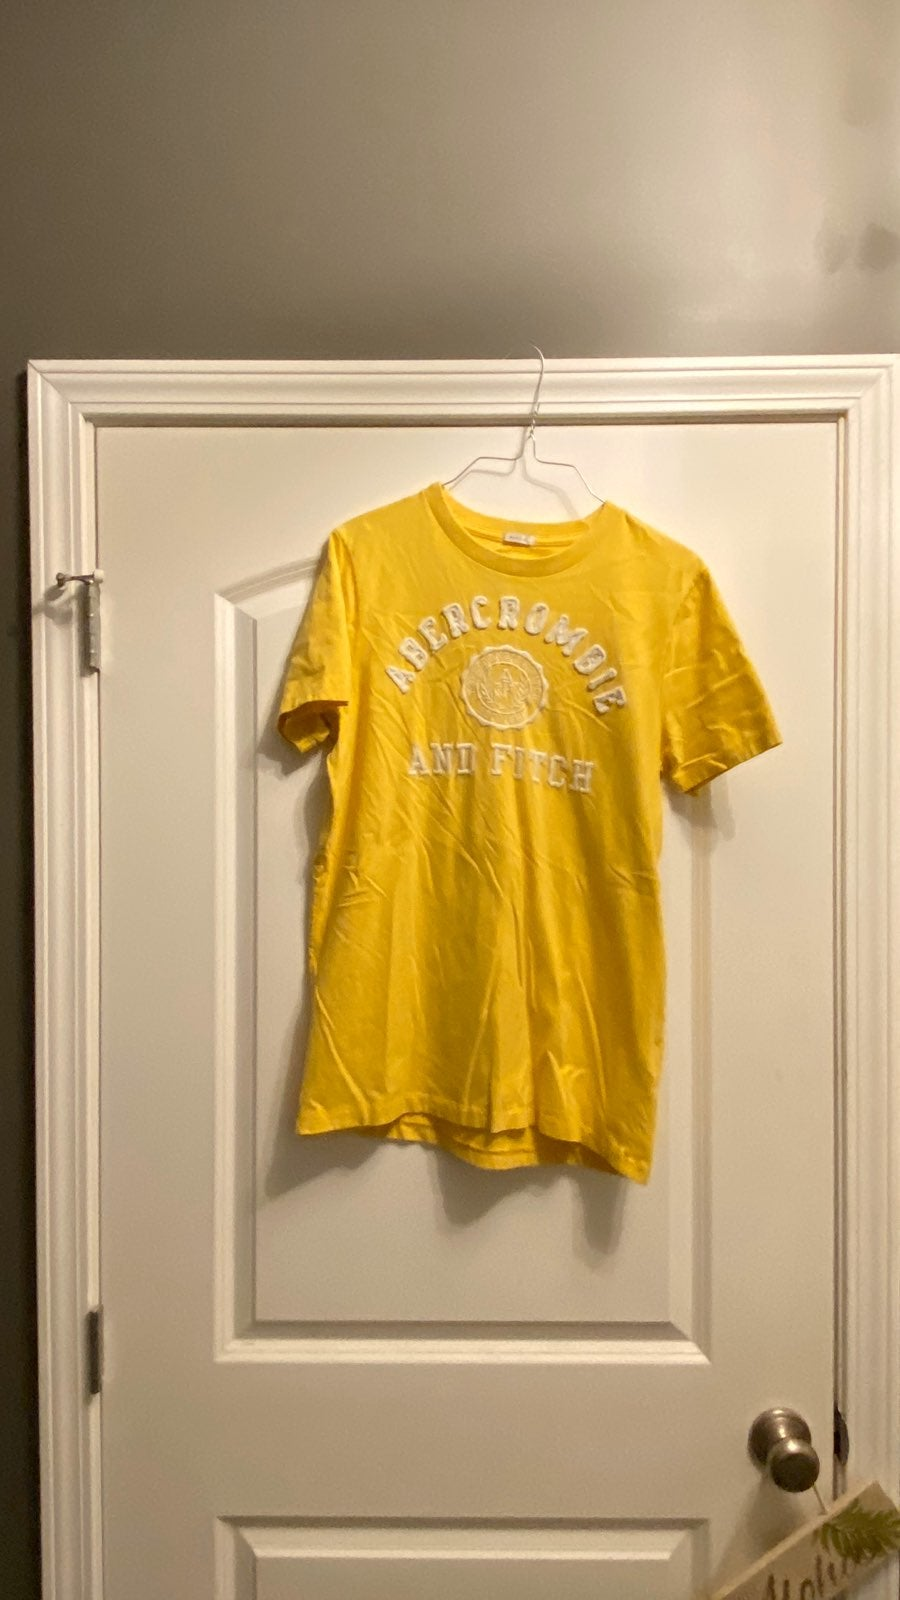 Mens Abercrombie & Fitch shirt